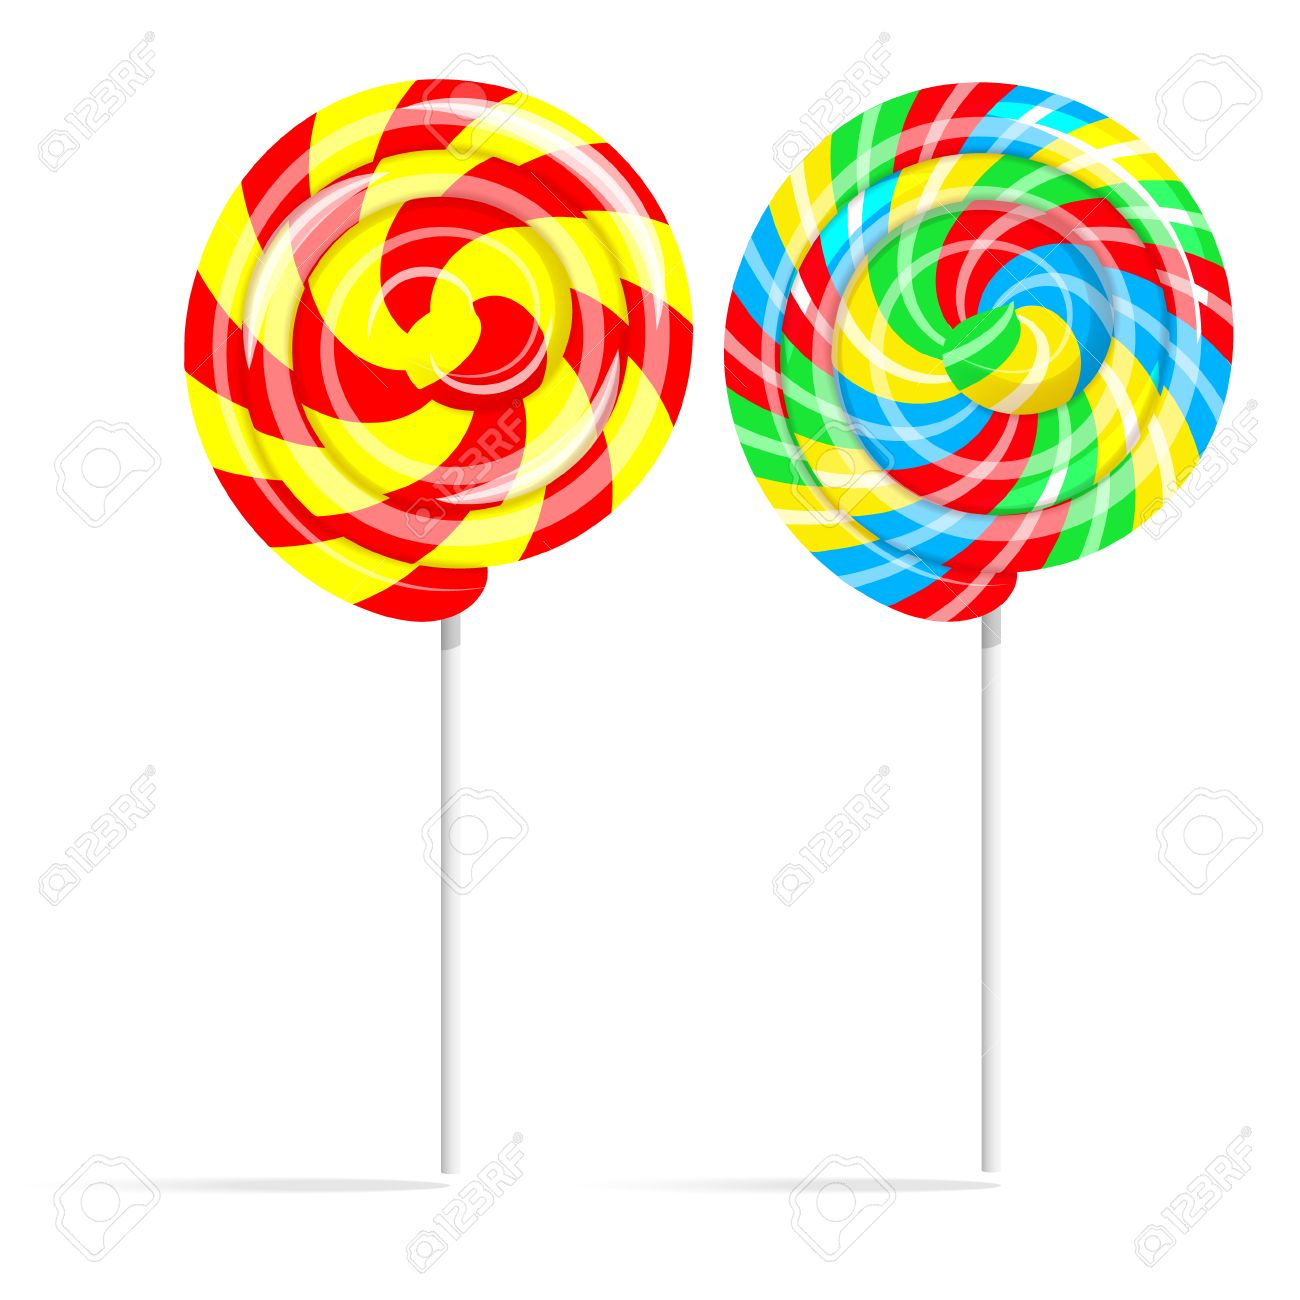 Colorful swirl lollipop set. Lollipop candy on a stick isolated on white background - 53496759